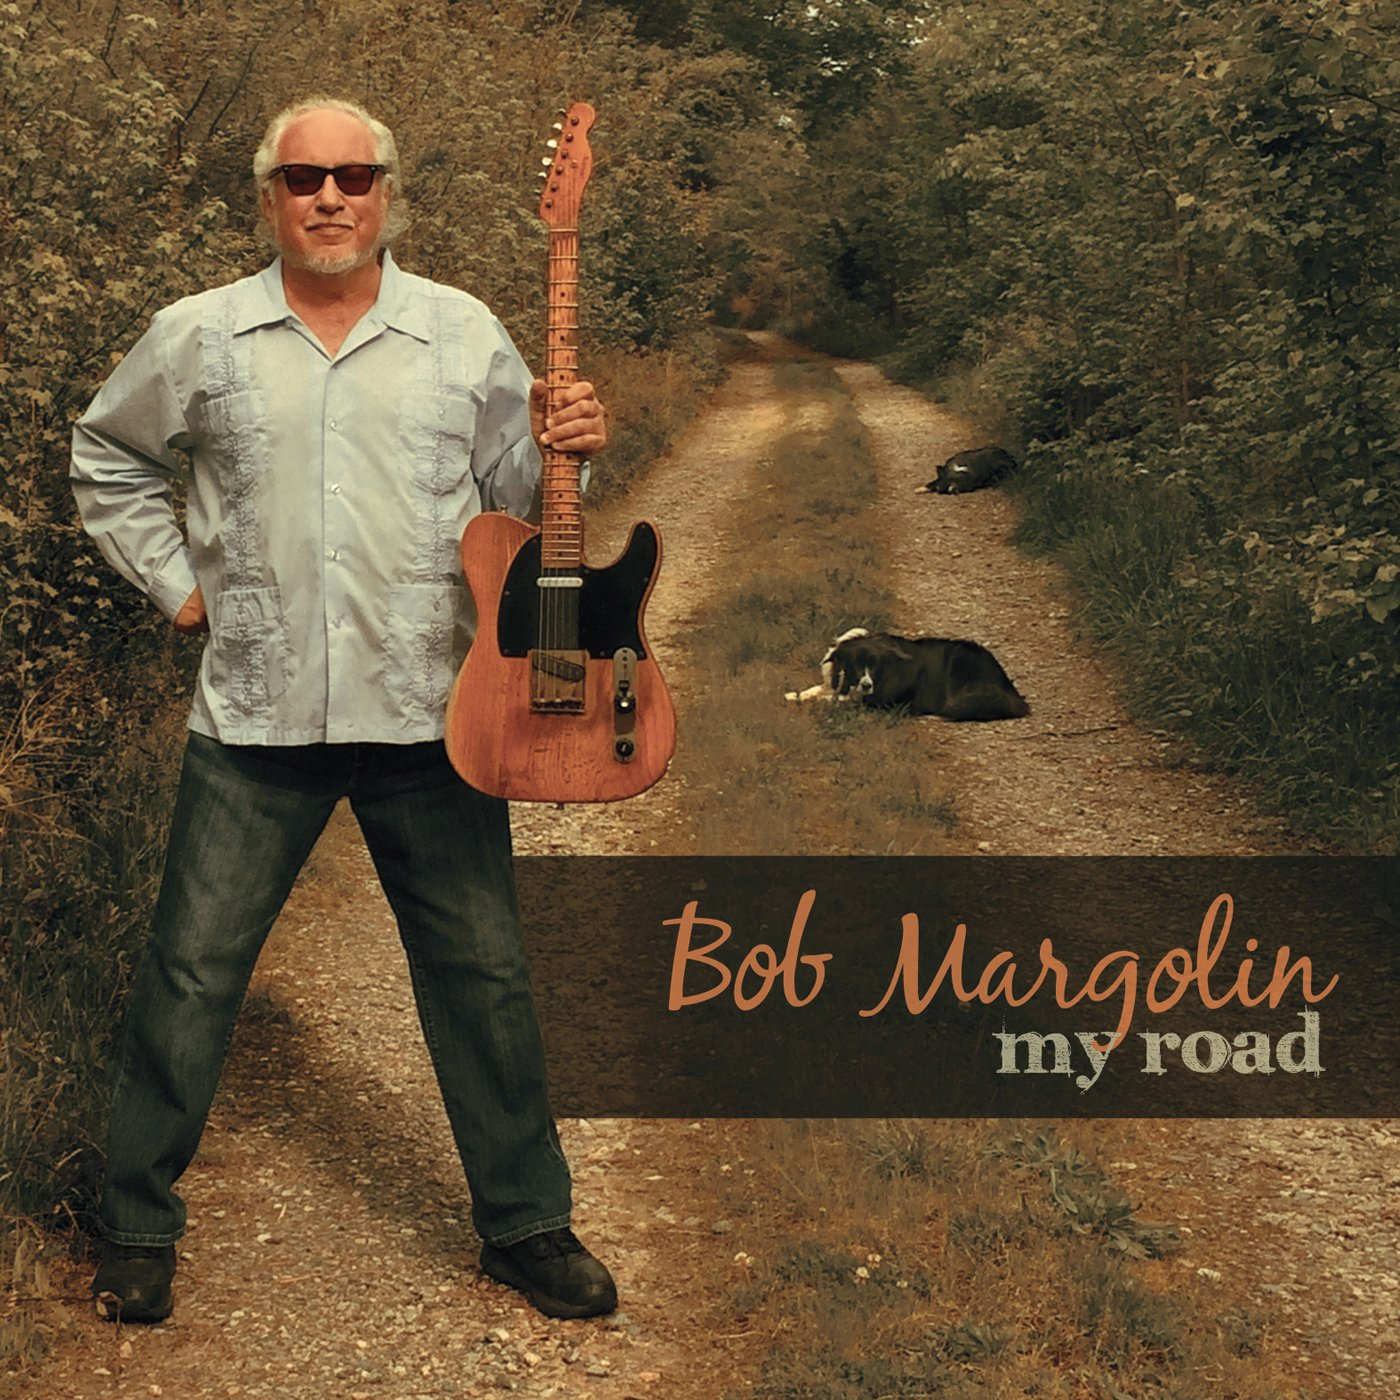 Bob Margolin - My Road 813HZXn-cIL._SL1400_